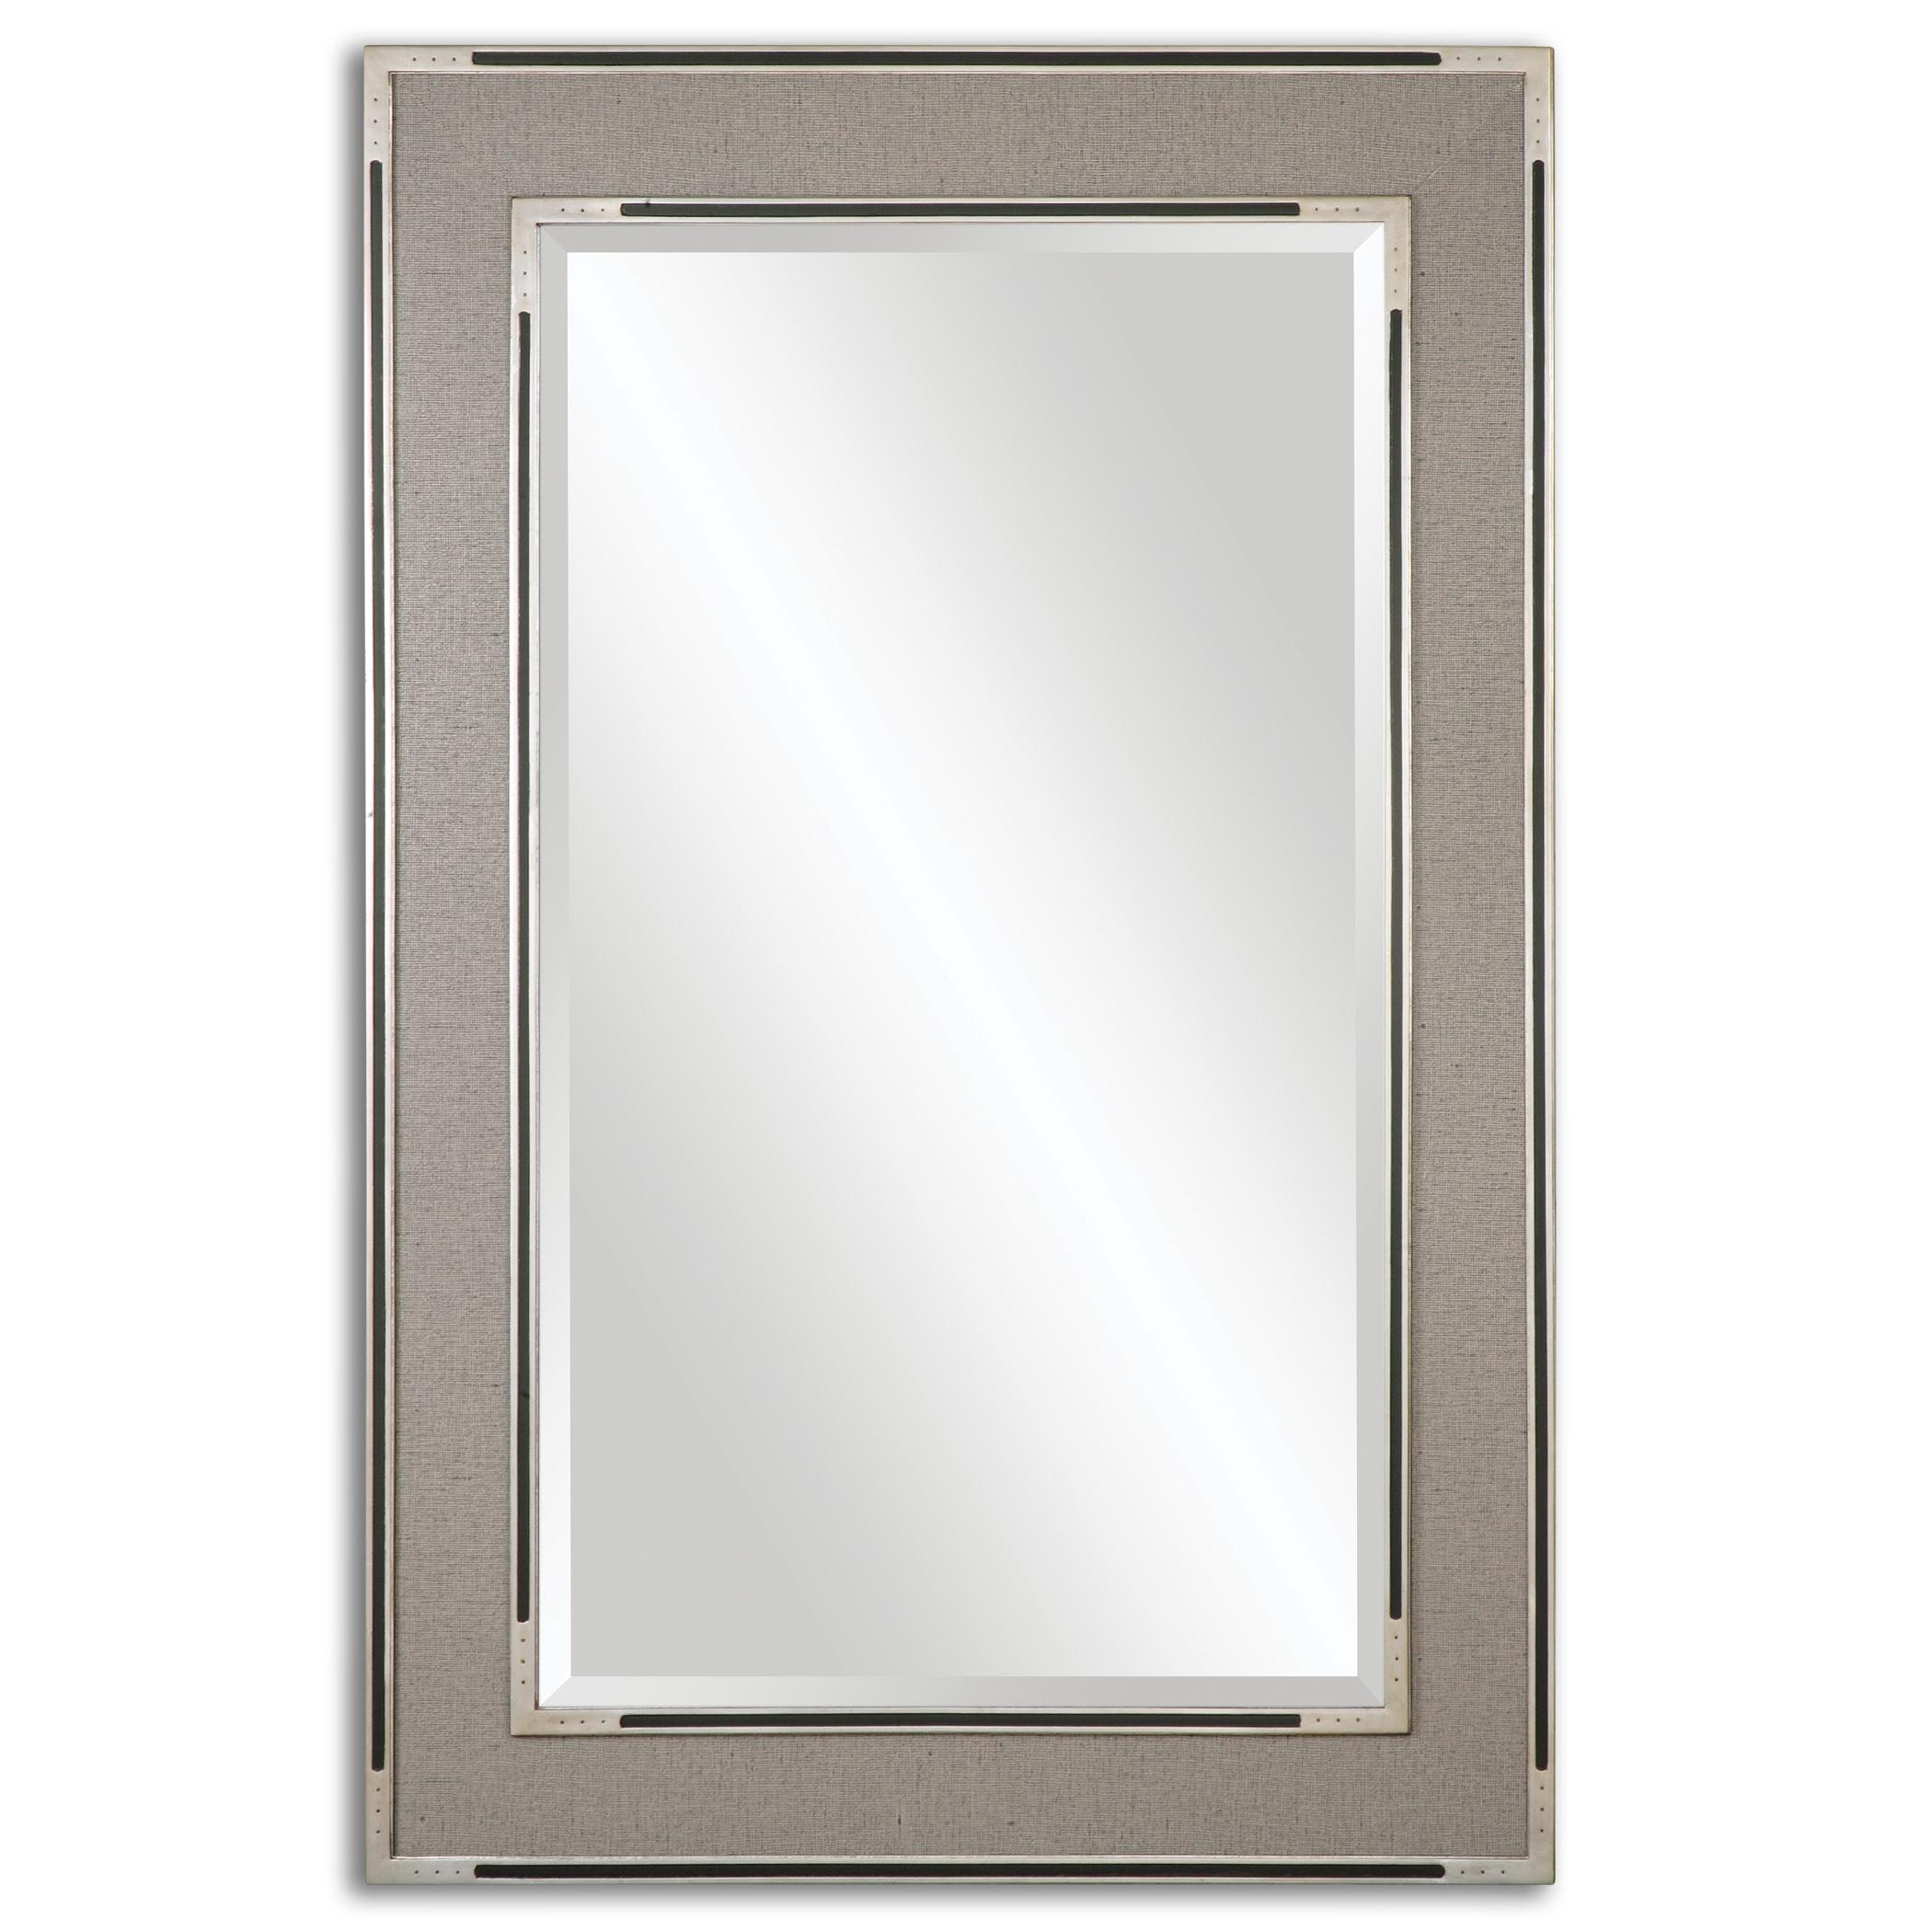 Mirrors Alfred Oversized Gray-Tan Mirror by Uttermost at Wayside Furniture